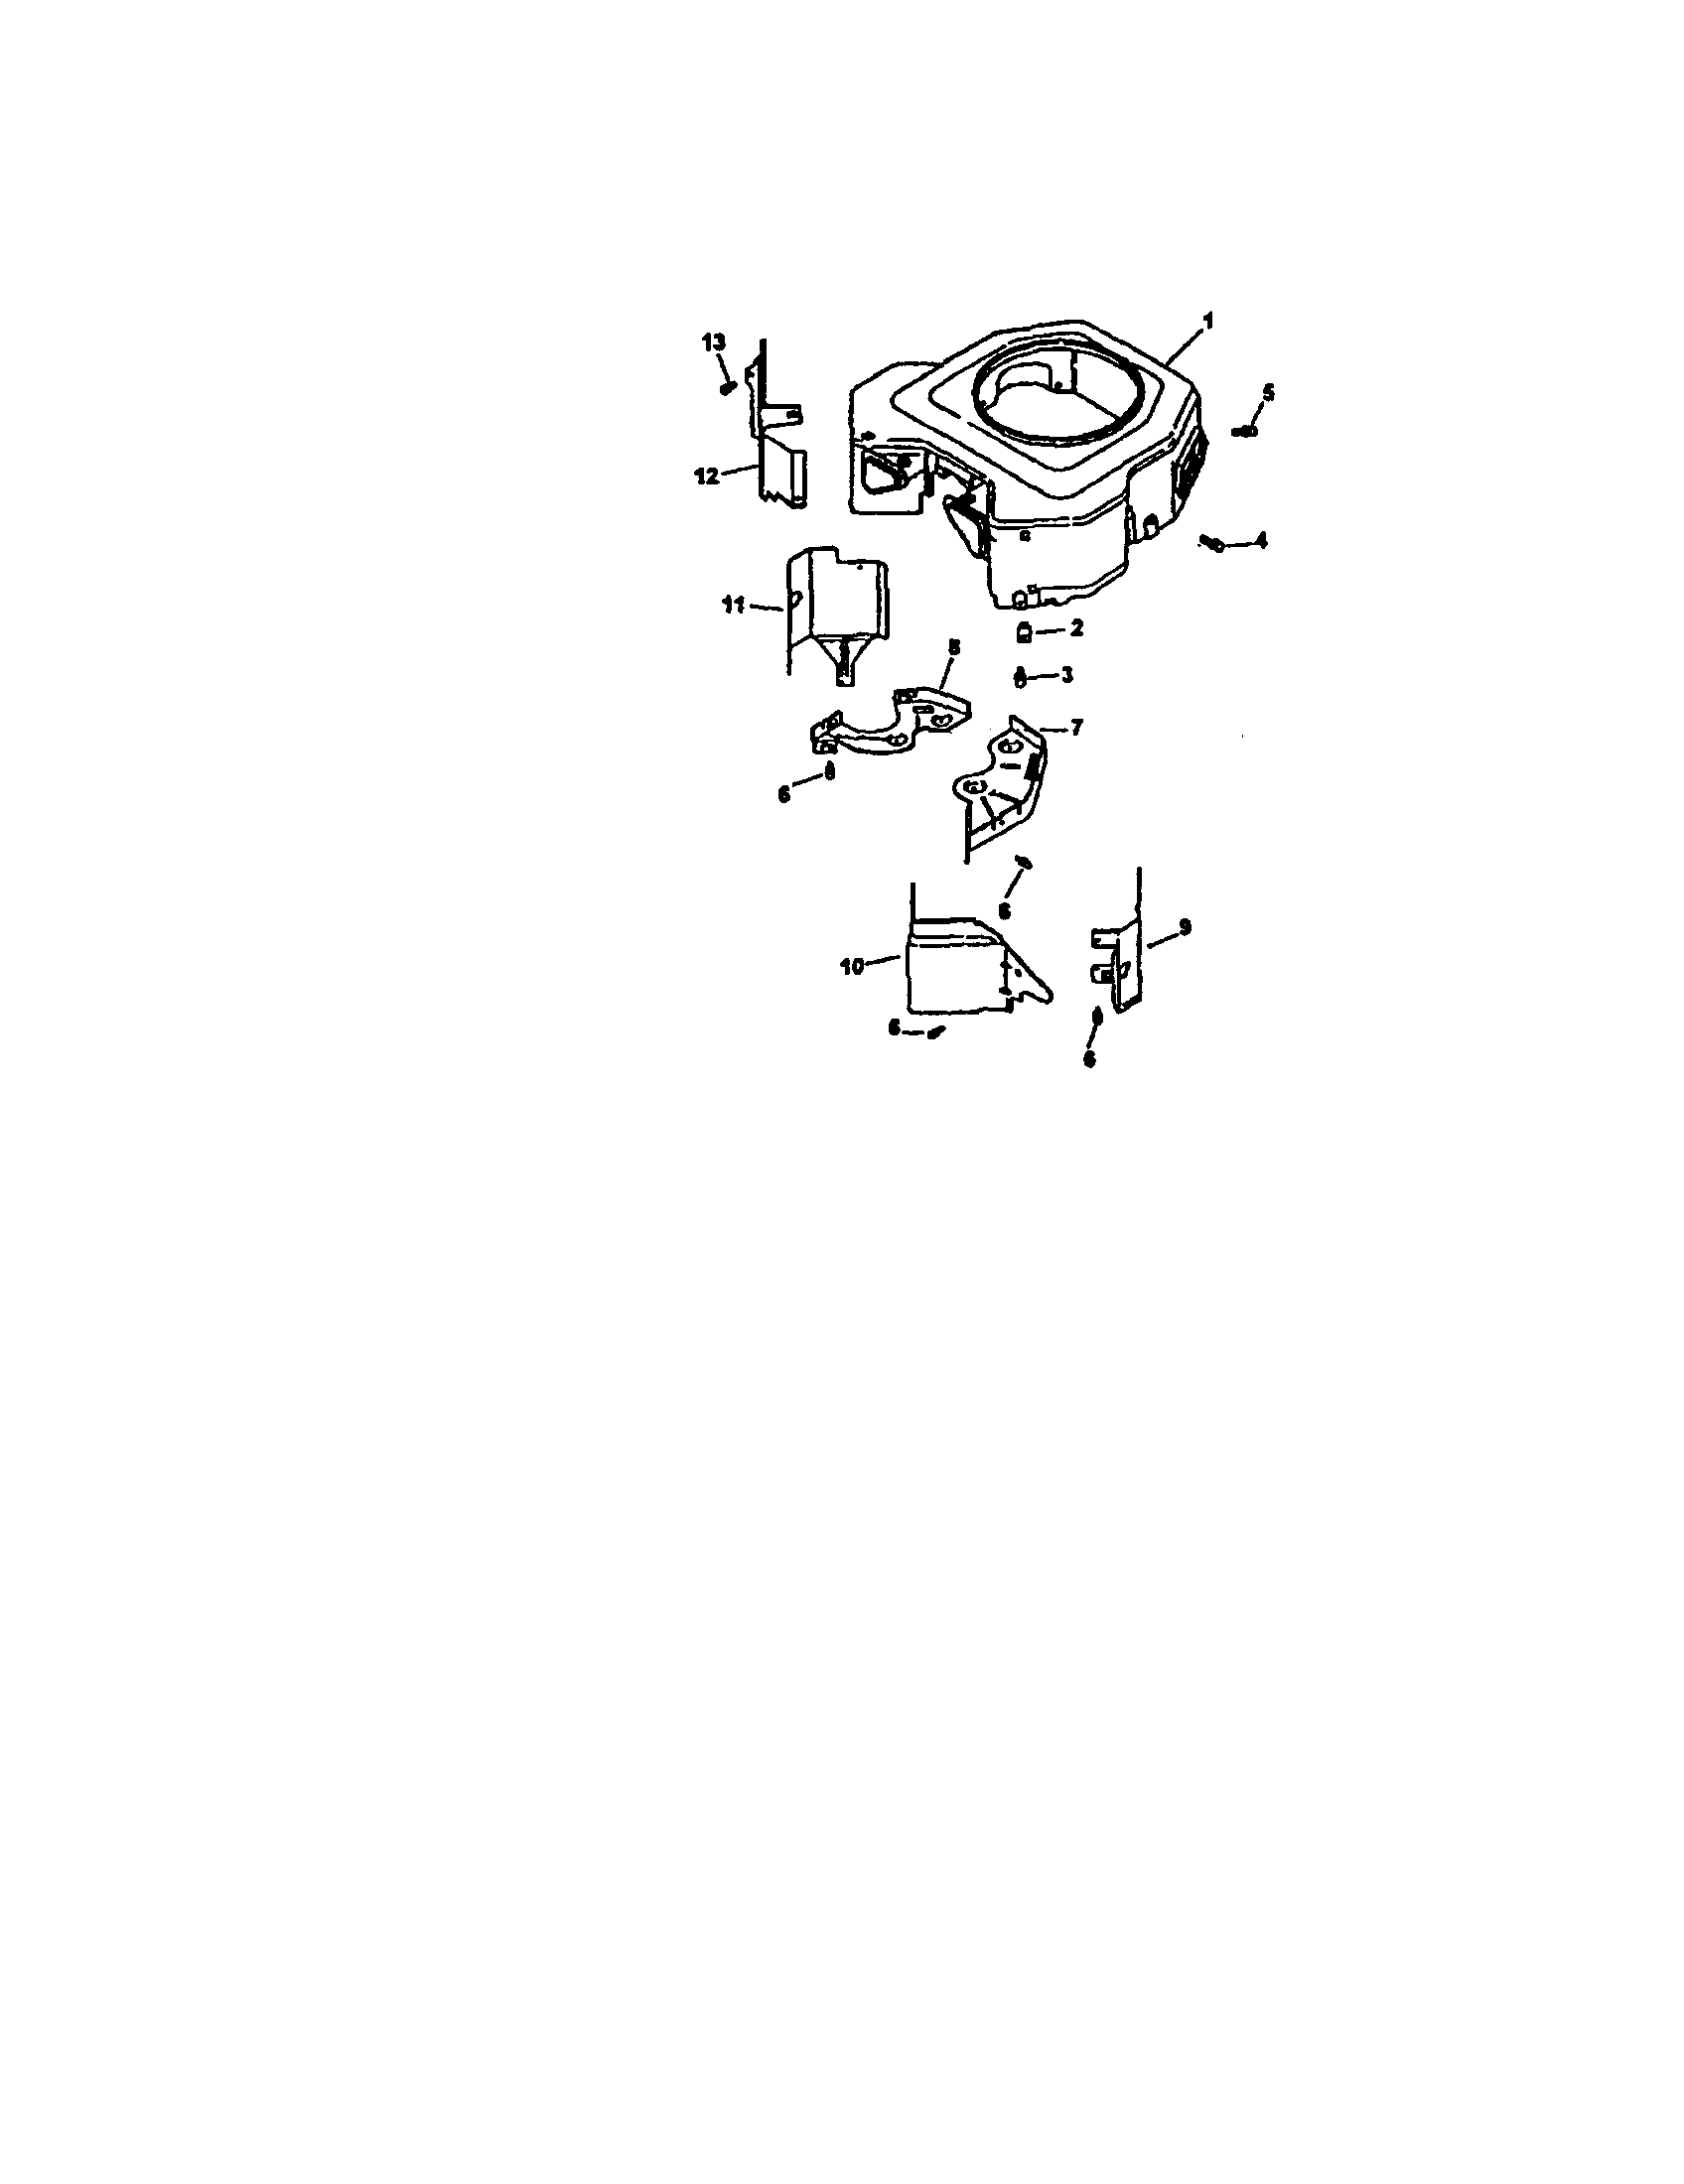 Kohler model CV26S-69526 engine genuine parts